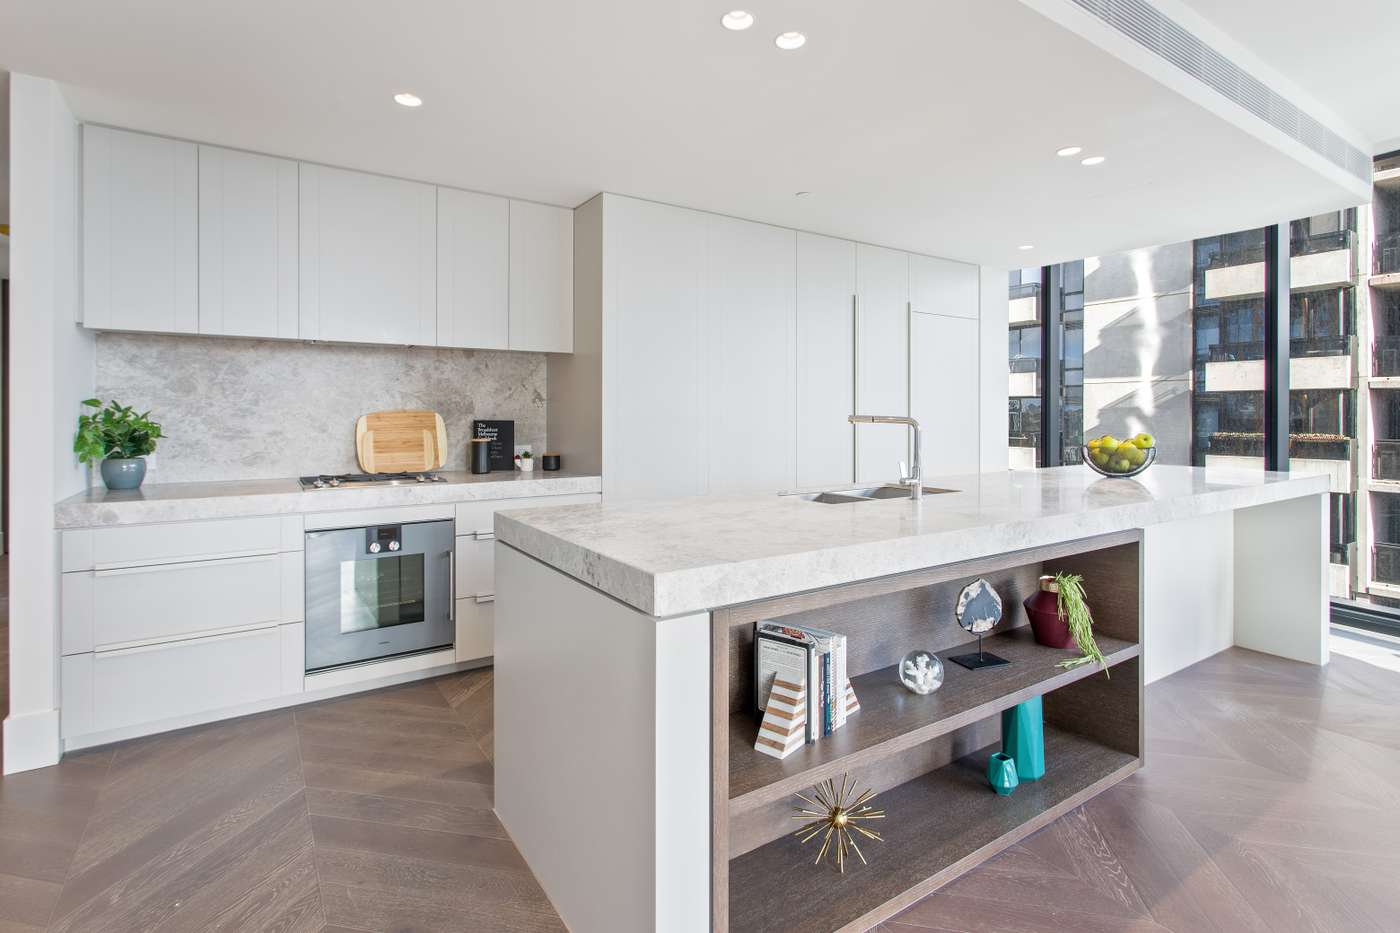 Main view of Homely apartment listing, 1301A/1 Almeida Crescent, South Yarra, VIC 3141